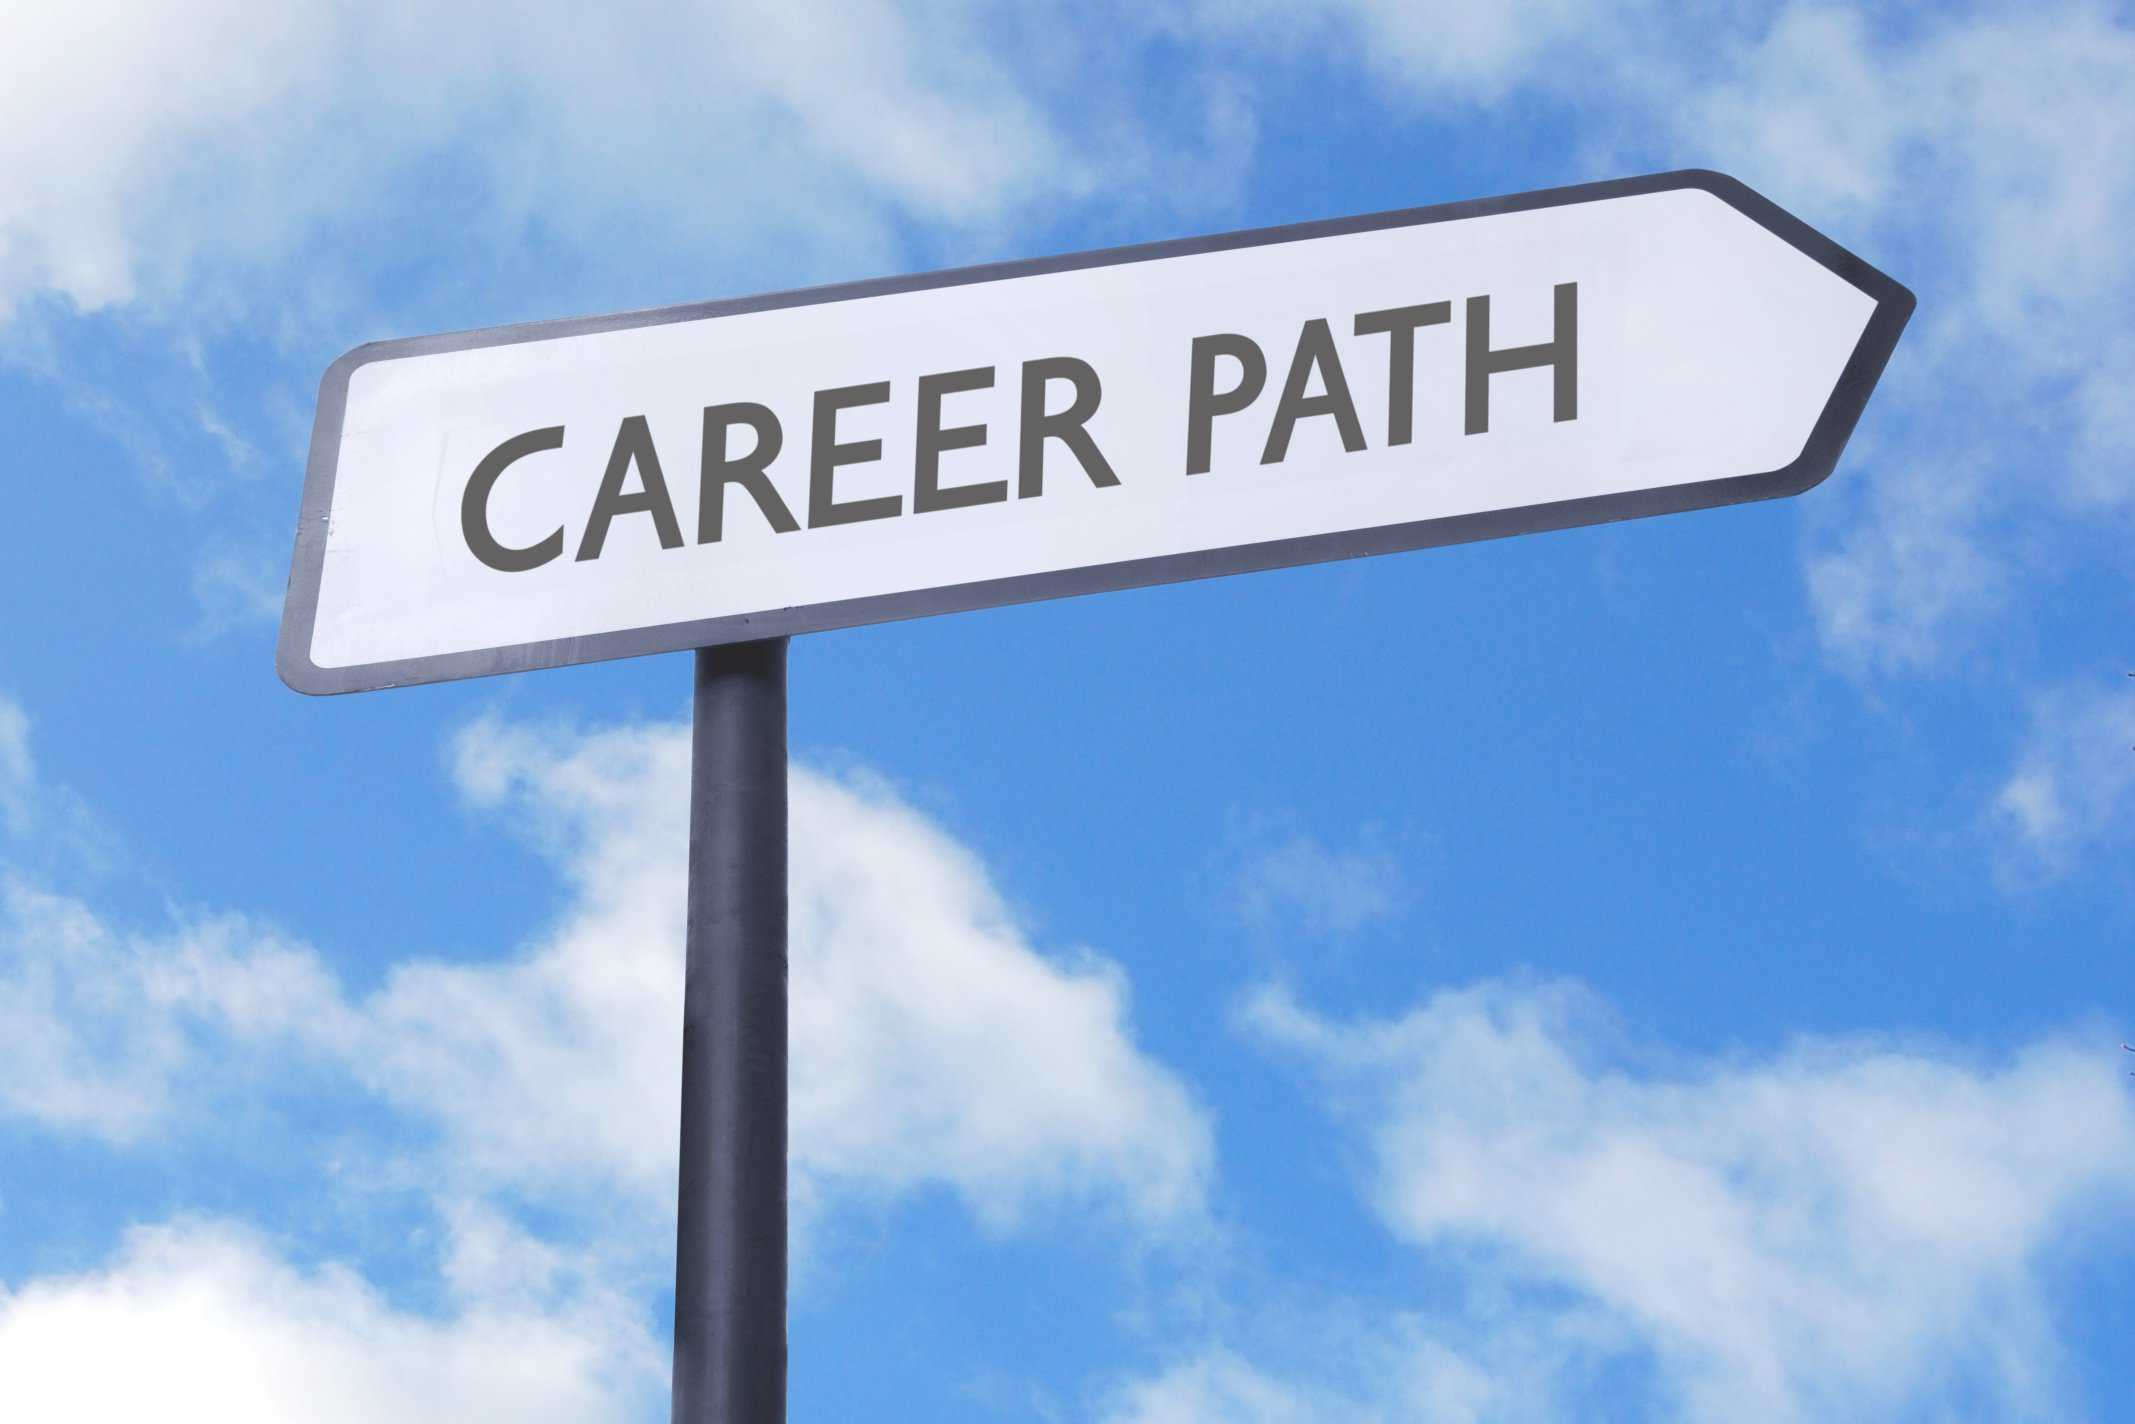 Career path: What's the best one for me?